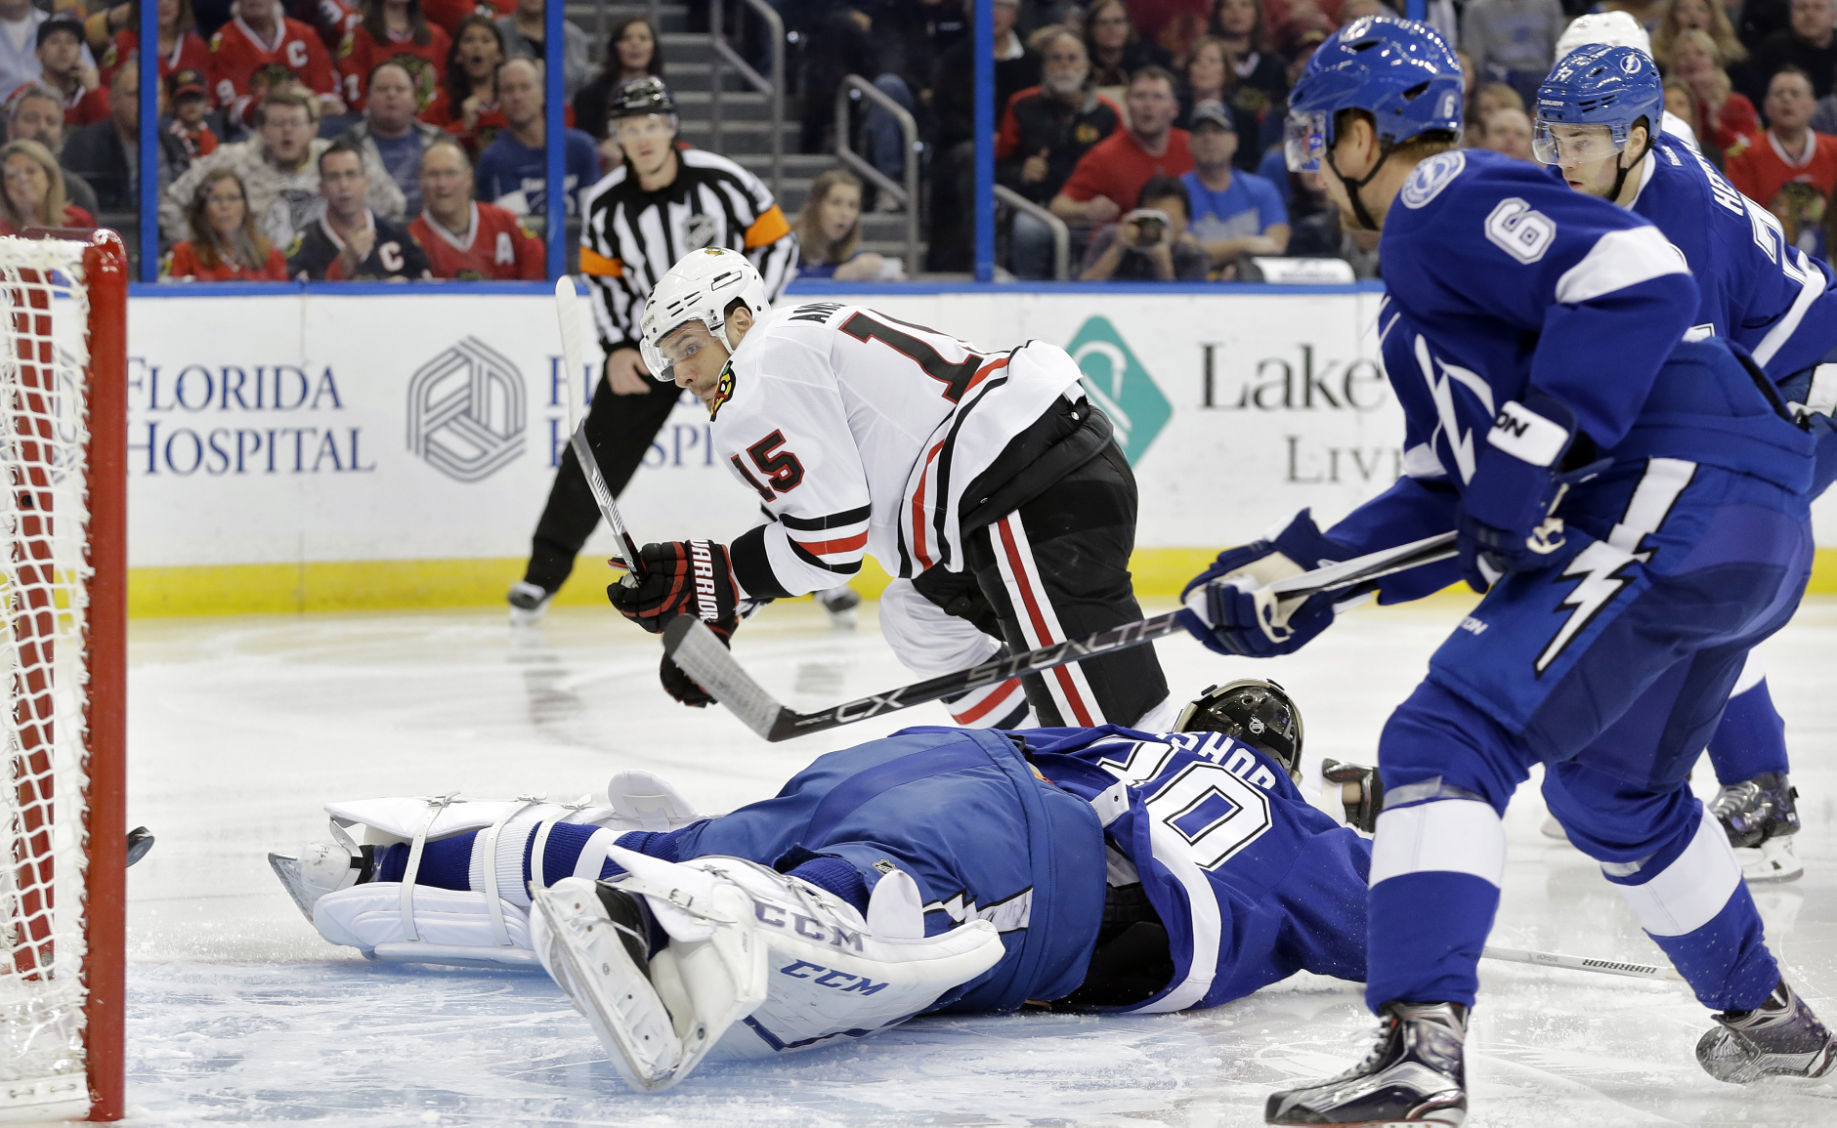 Blackhawks left wing Panik to sit out after oversleeping